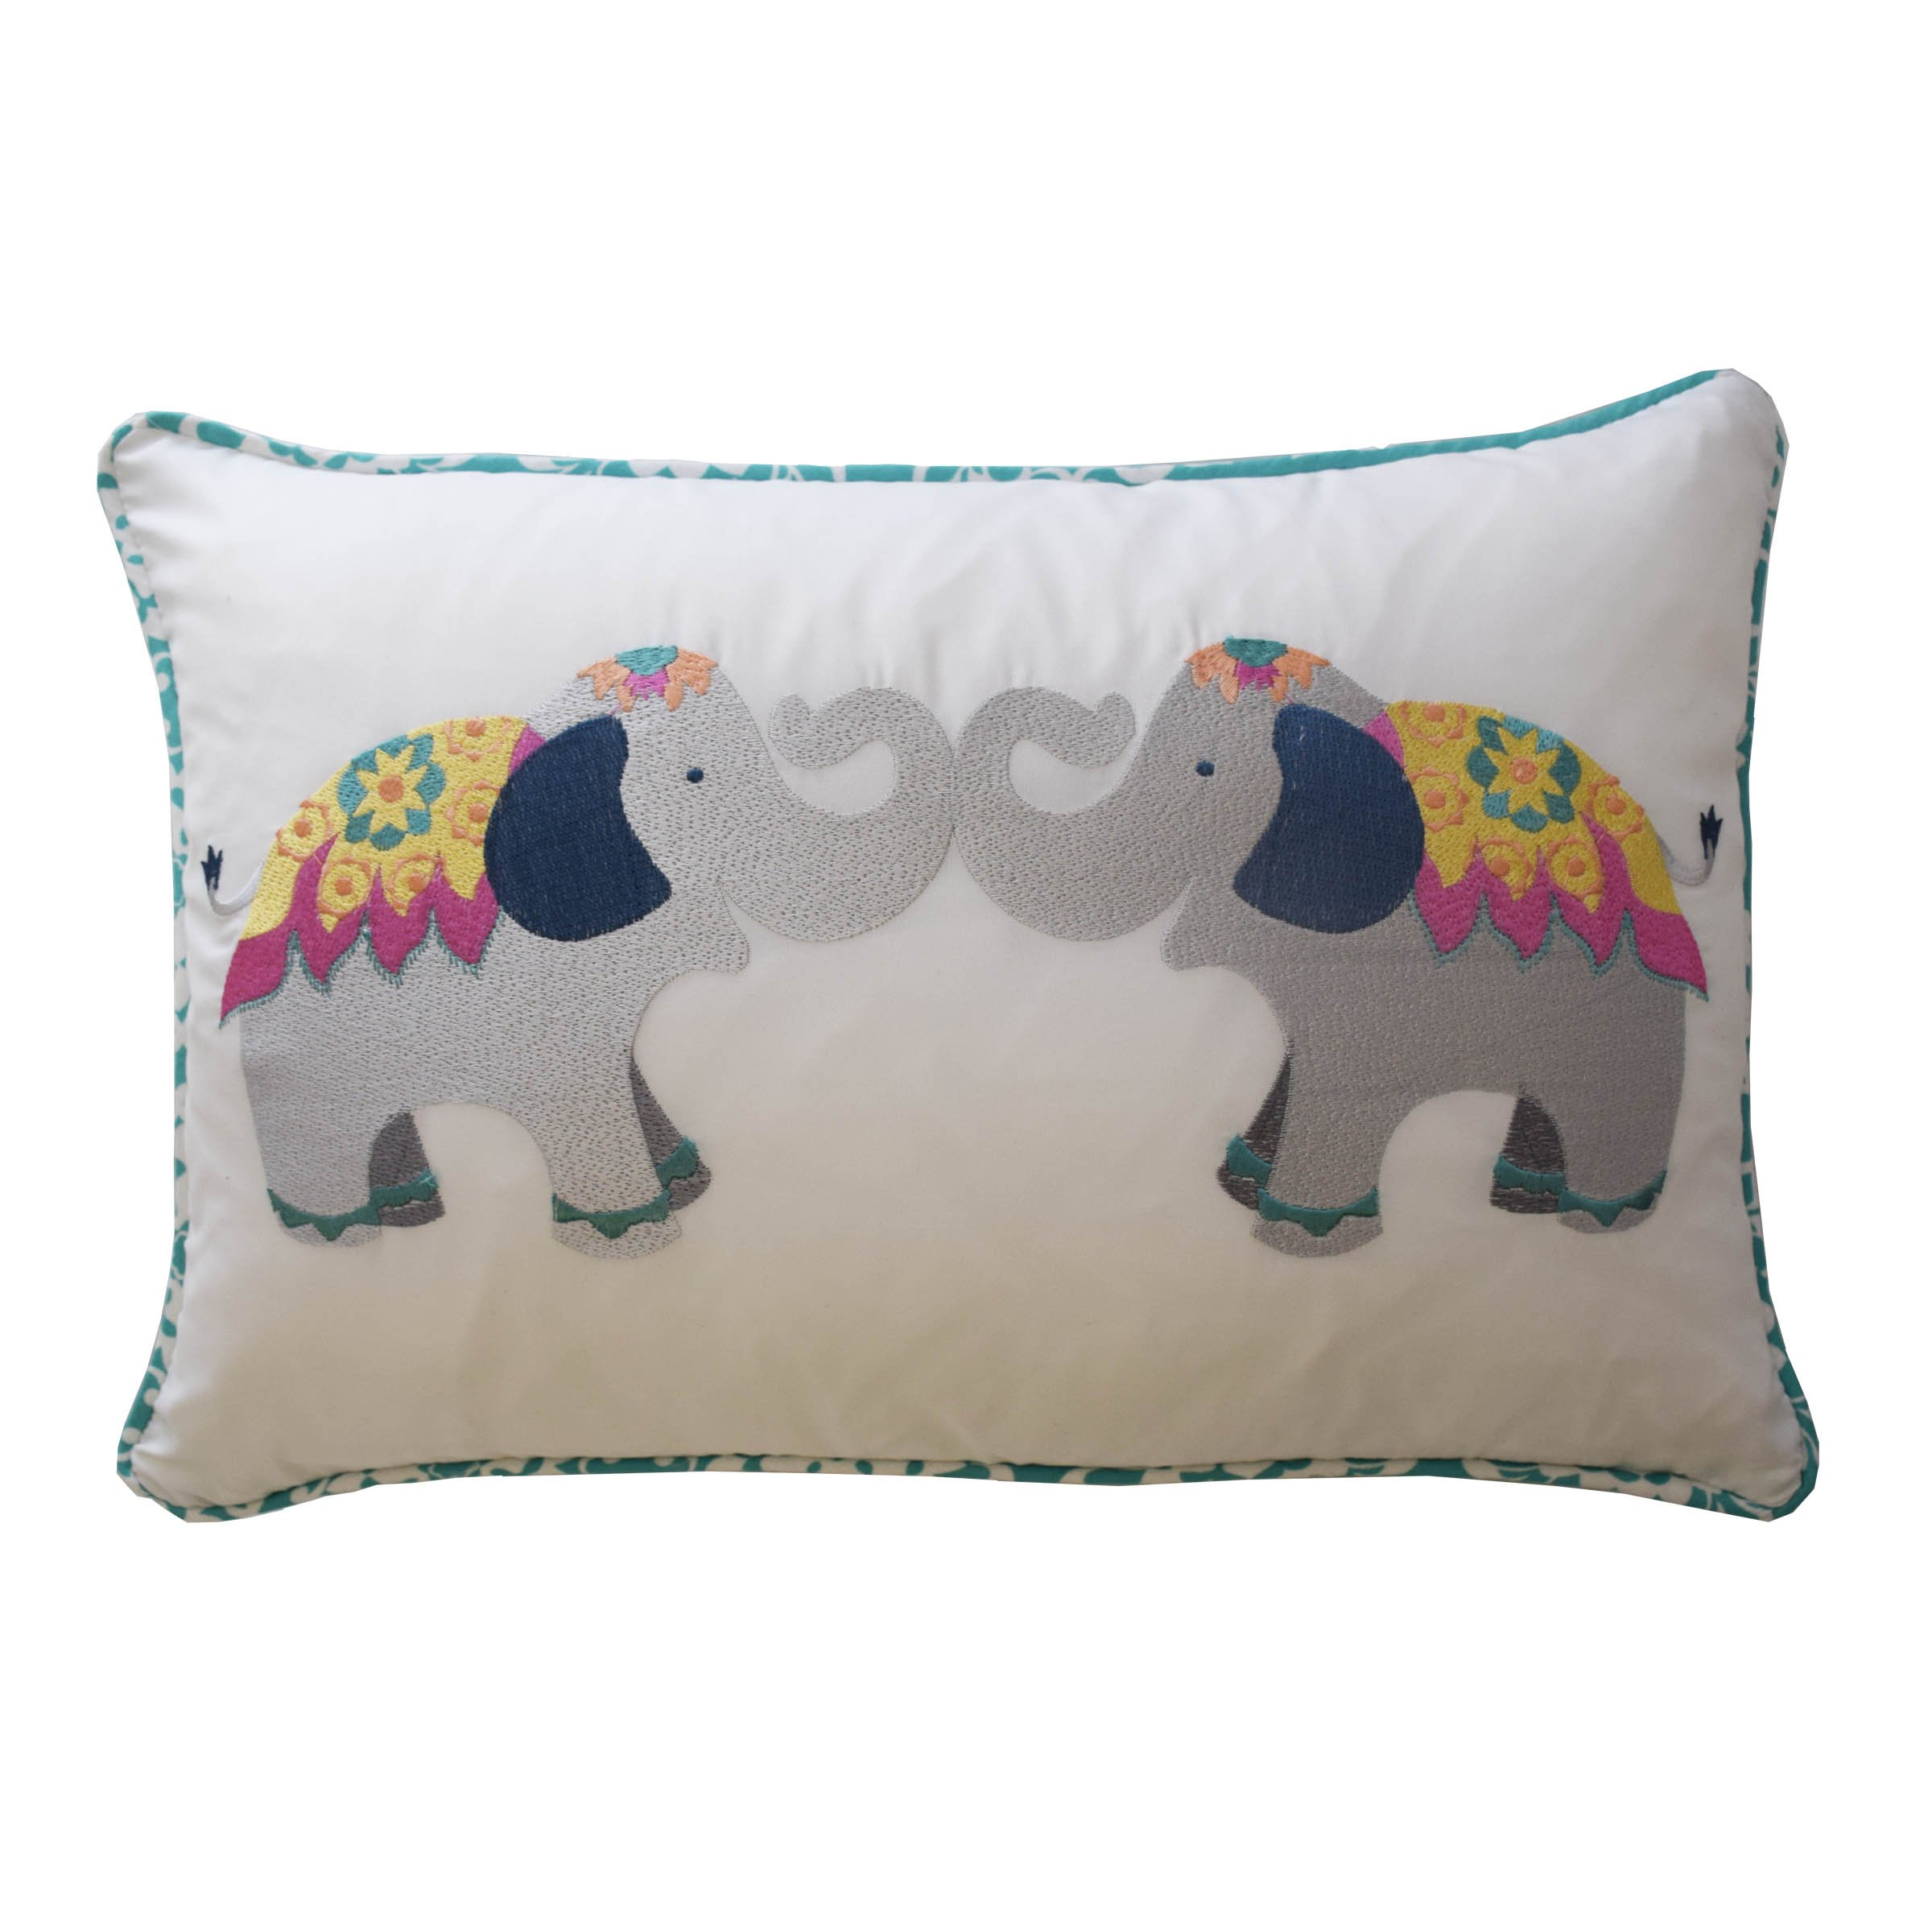 WAVERLY Kids Bollywood Decorative Pillow, Multicolor, 12 x 18